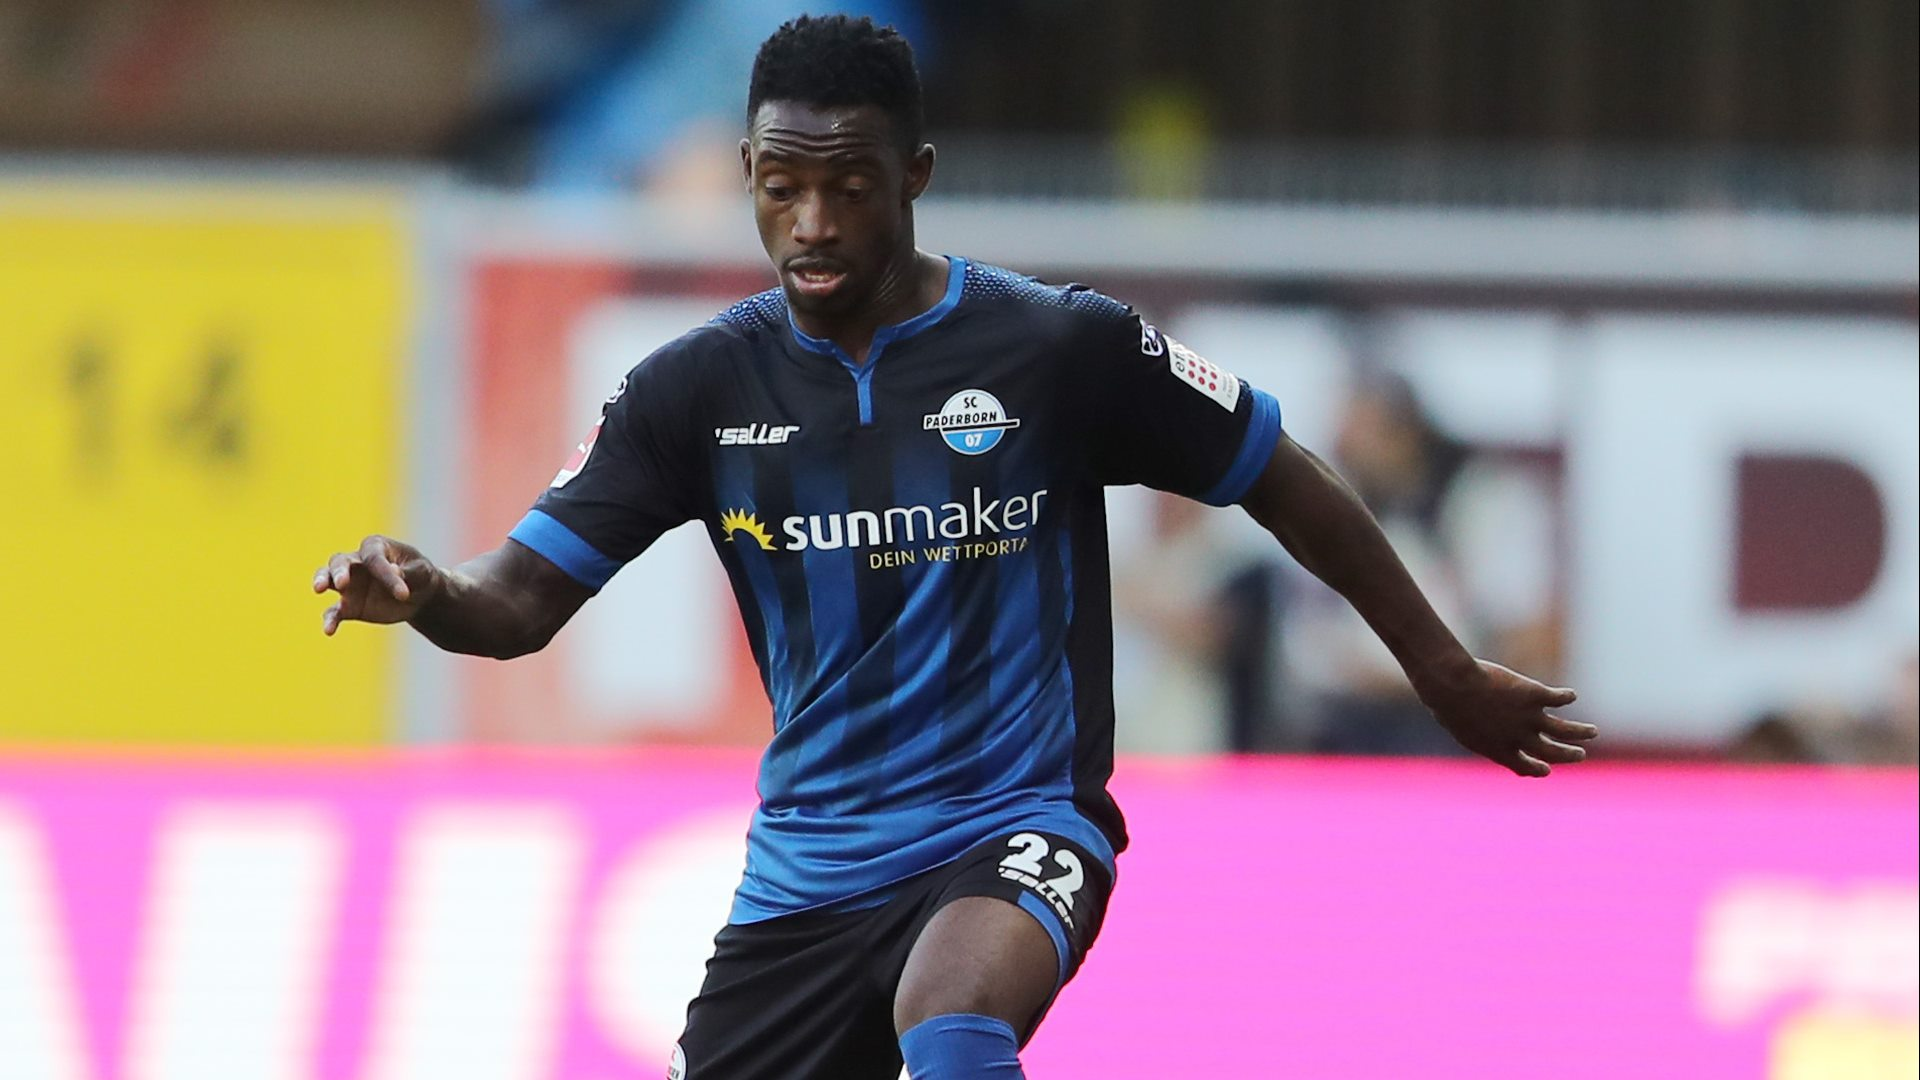 2021 Afcon qualifiers: German-born Antwi-Adjei to miss Ghana clash with South Africa